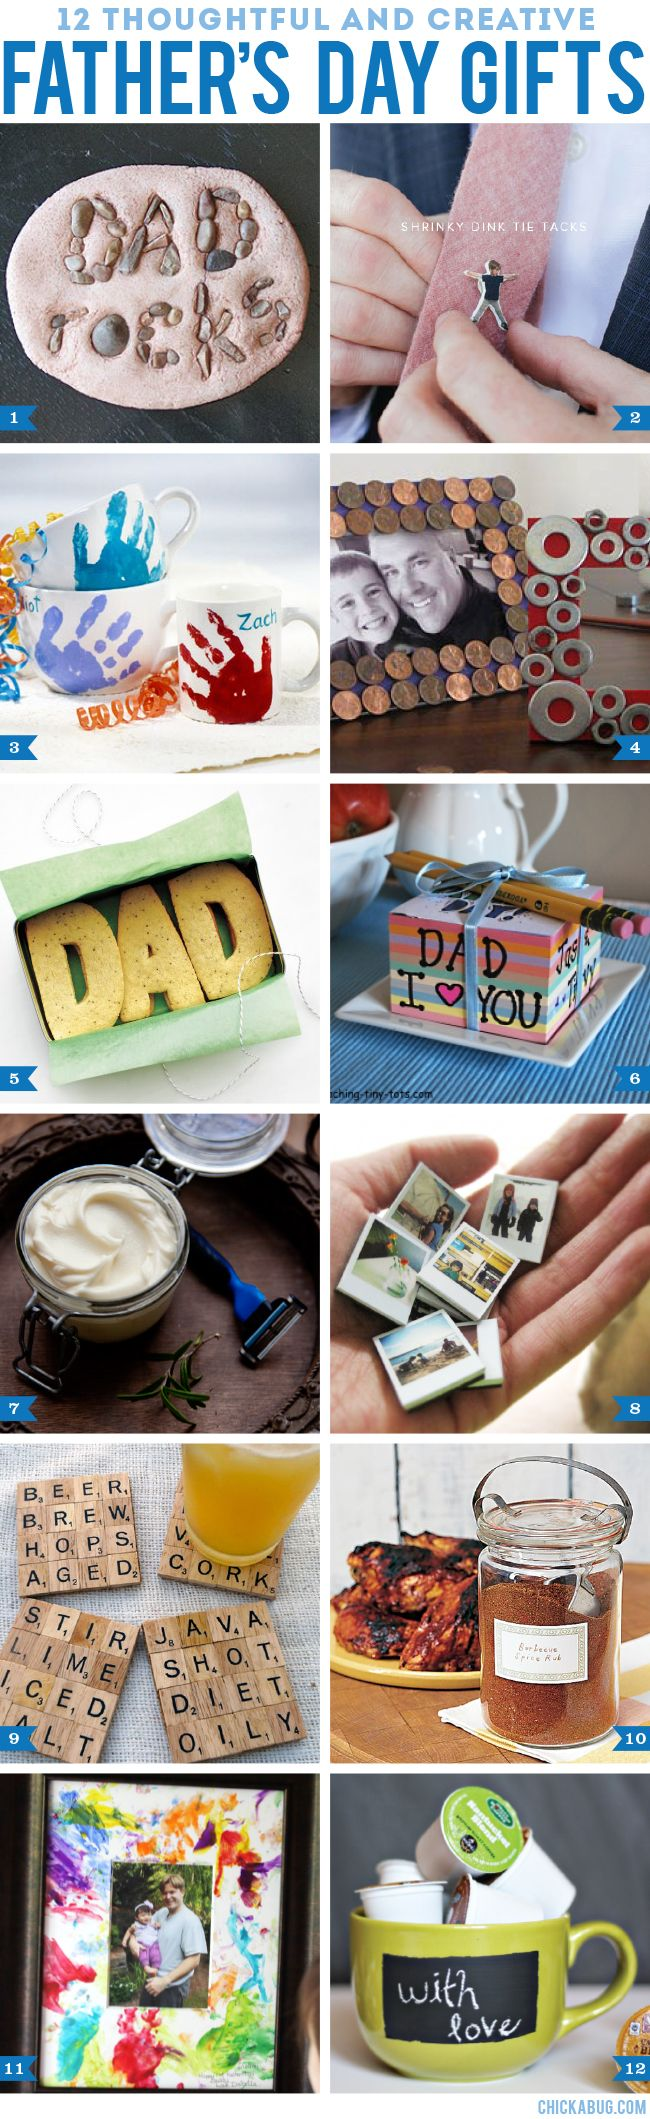 12 thoughtful and creative DIY Father's Day gifts #fathersday